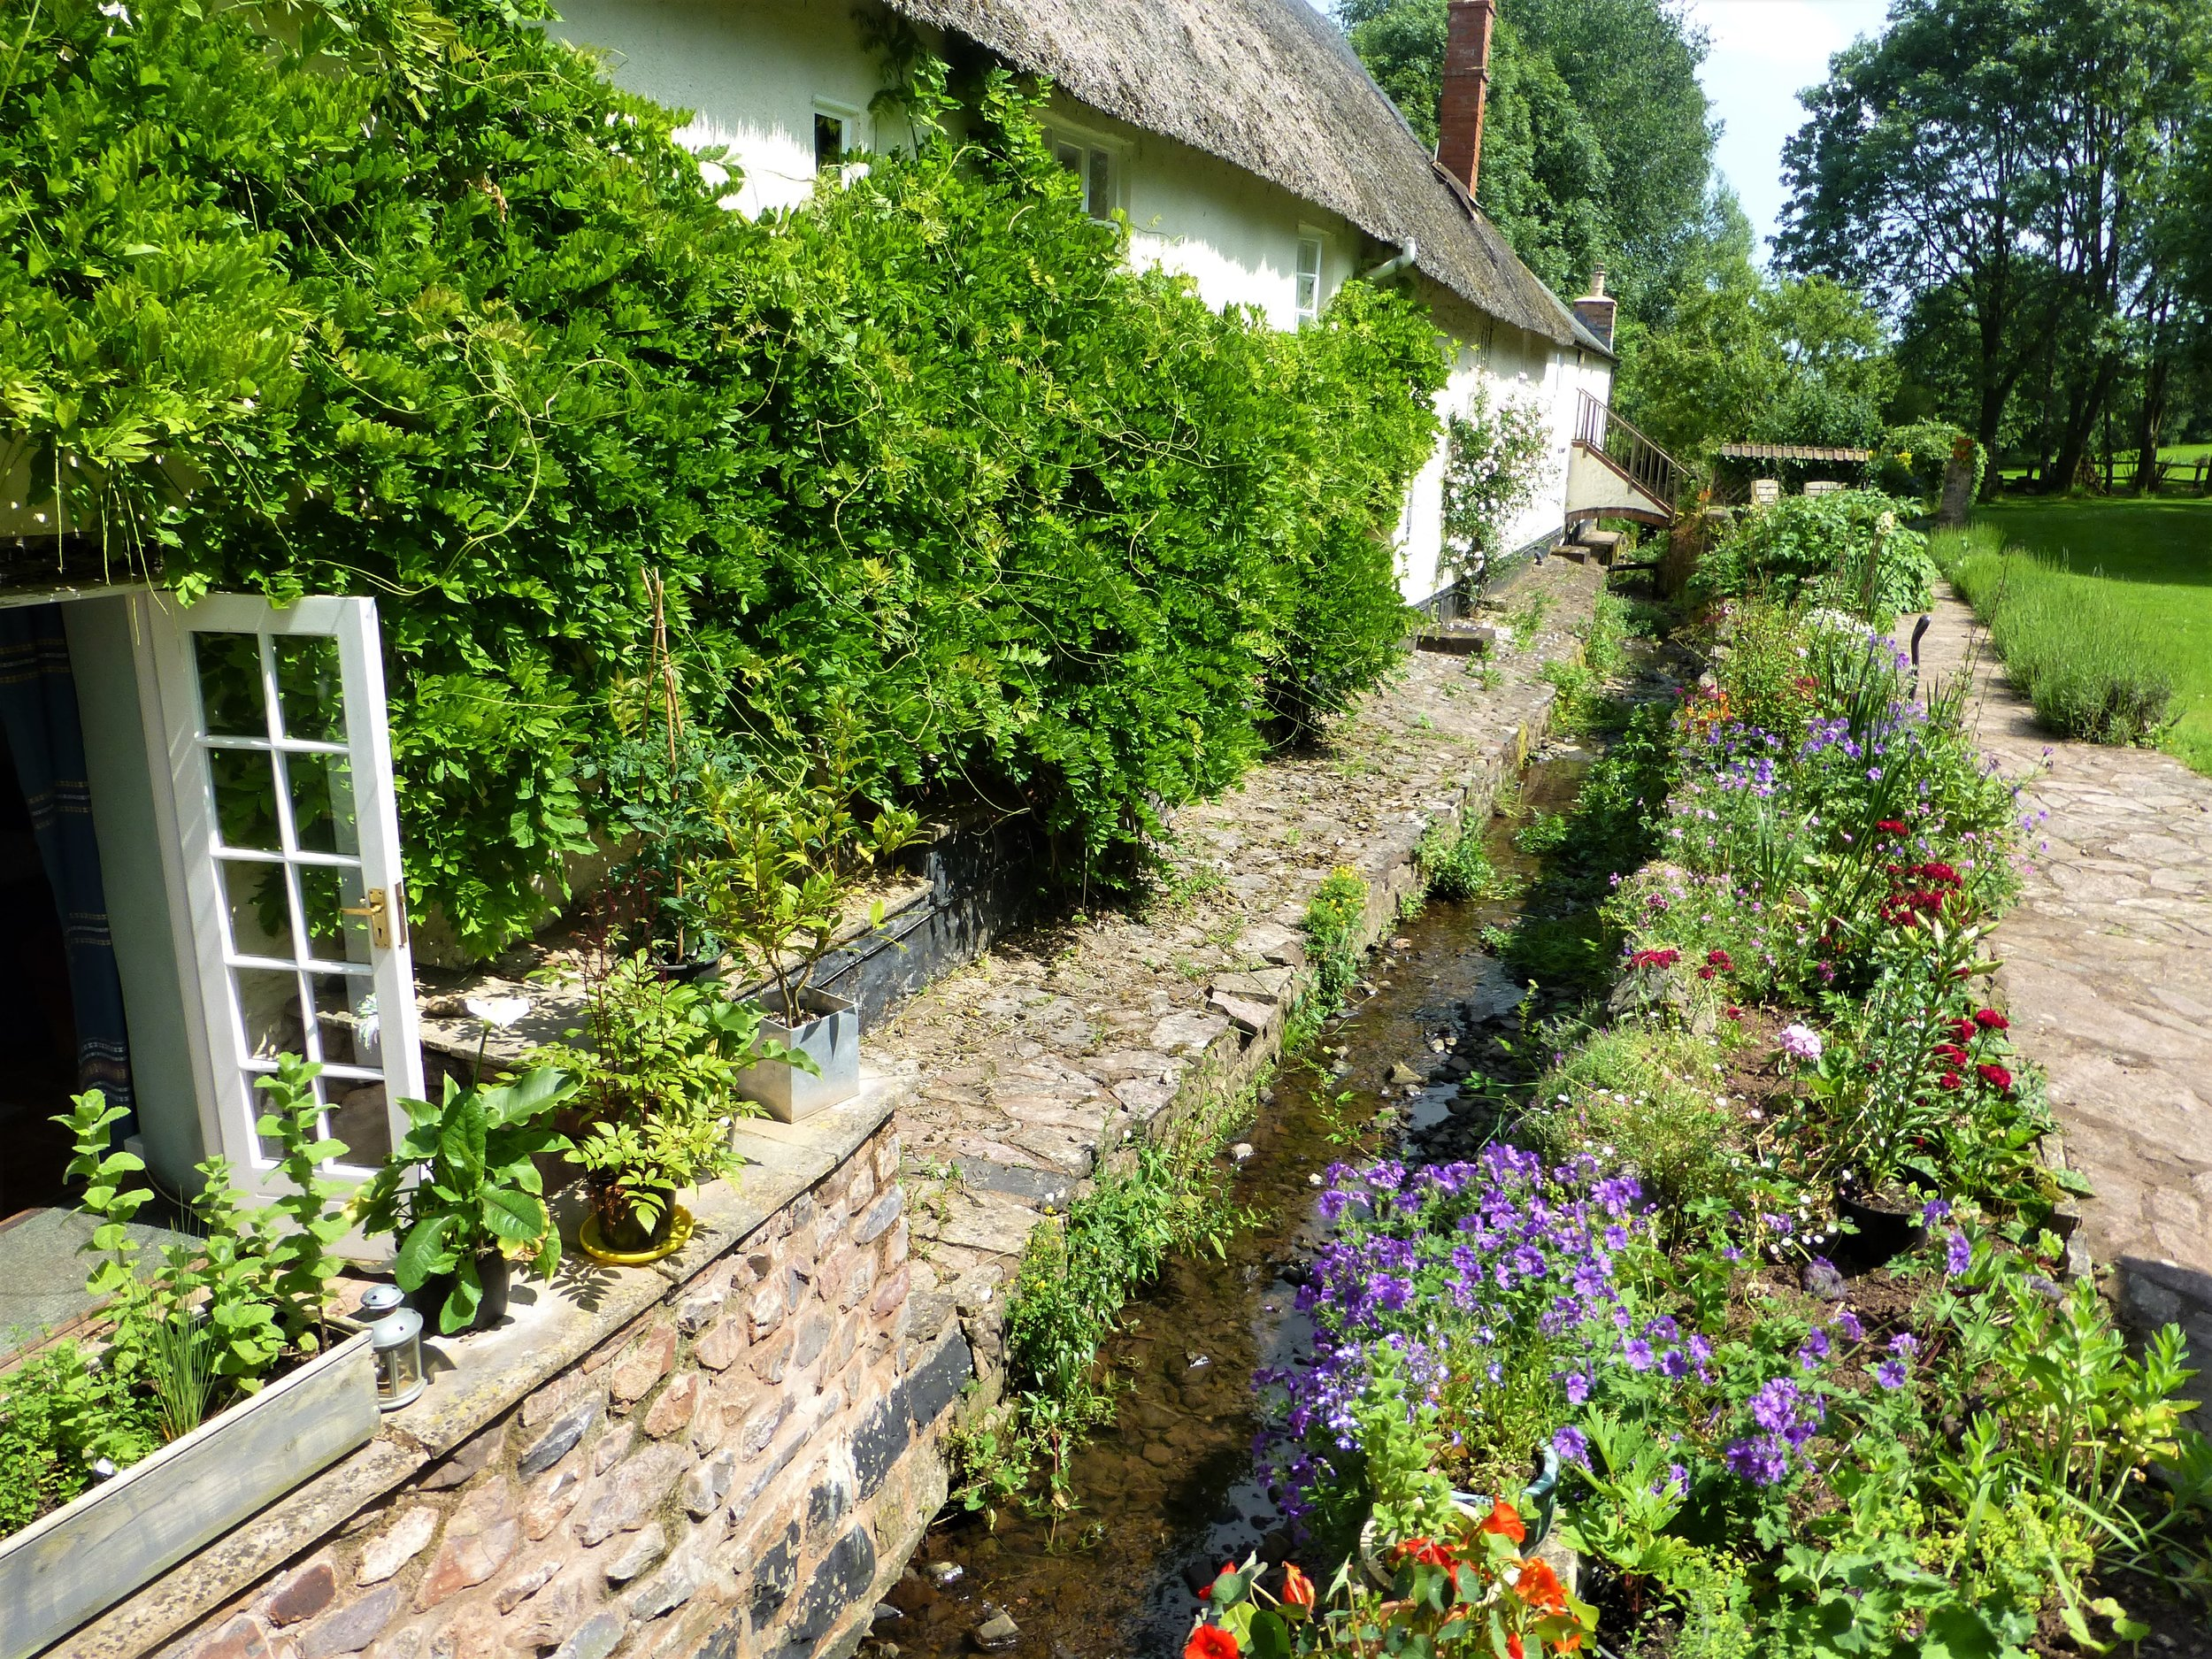 Our leat, bursting with life and colour!